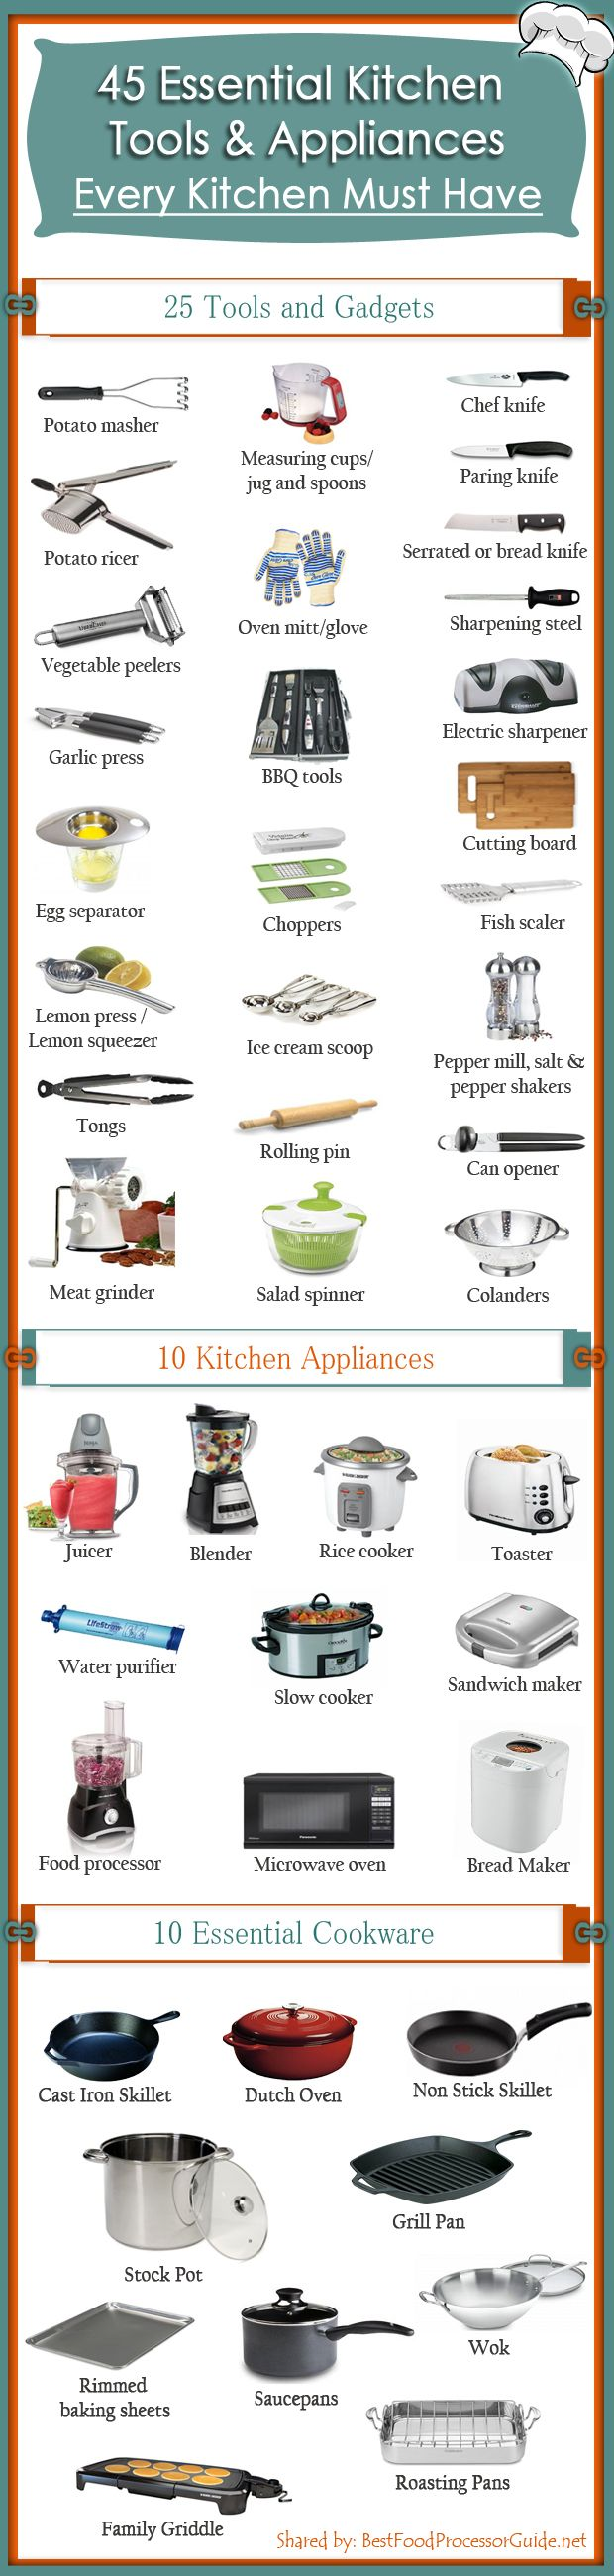 We want to create one of the best Kitchen Tools and gadgets, appliances, cookware and other related resource page in the web.